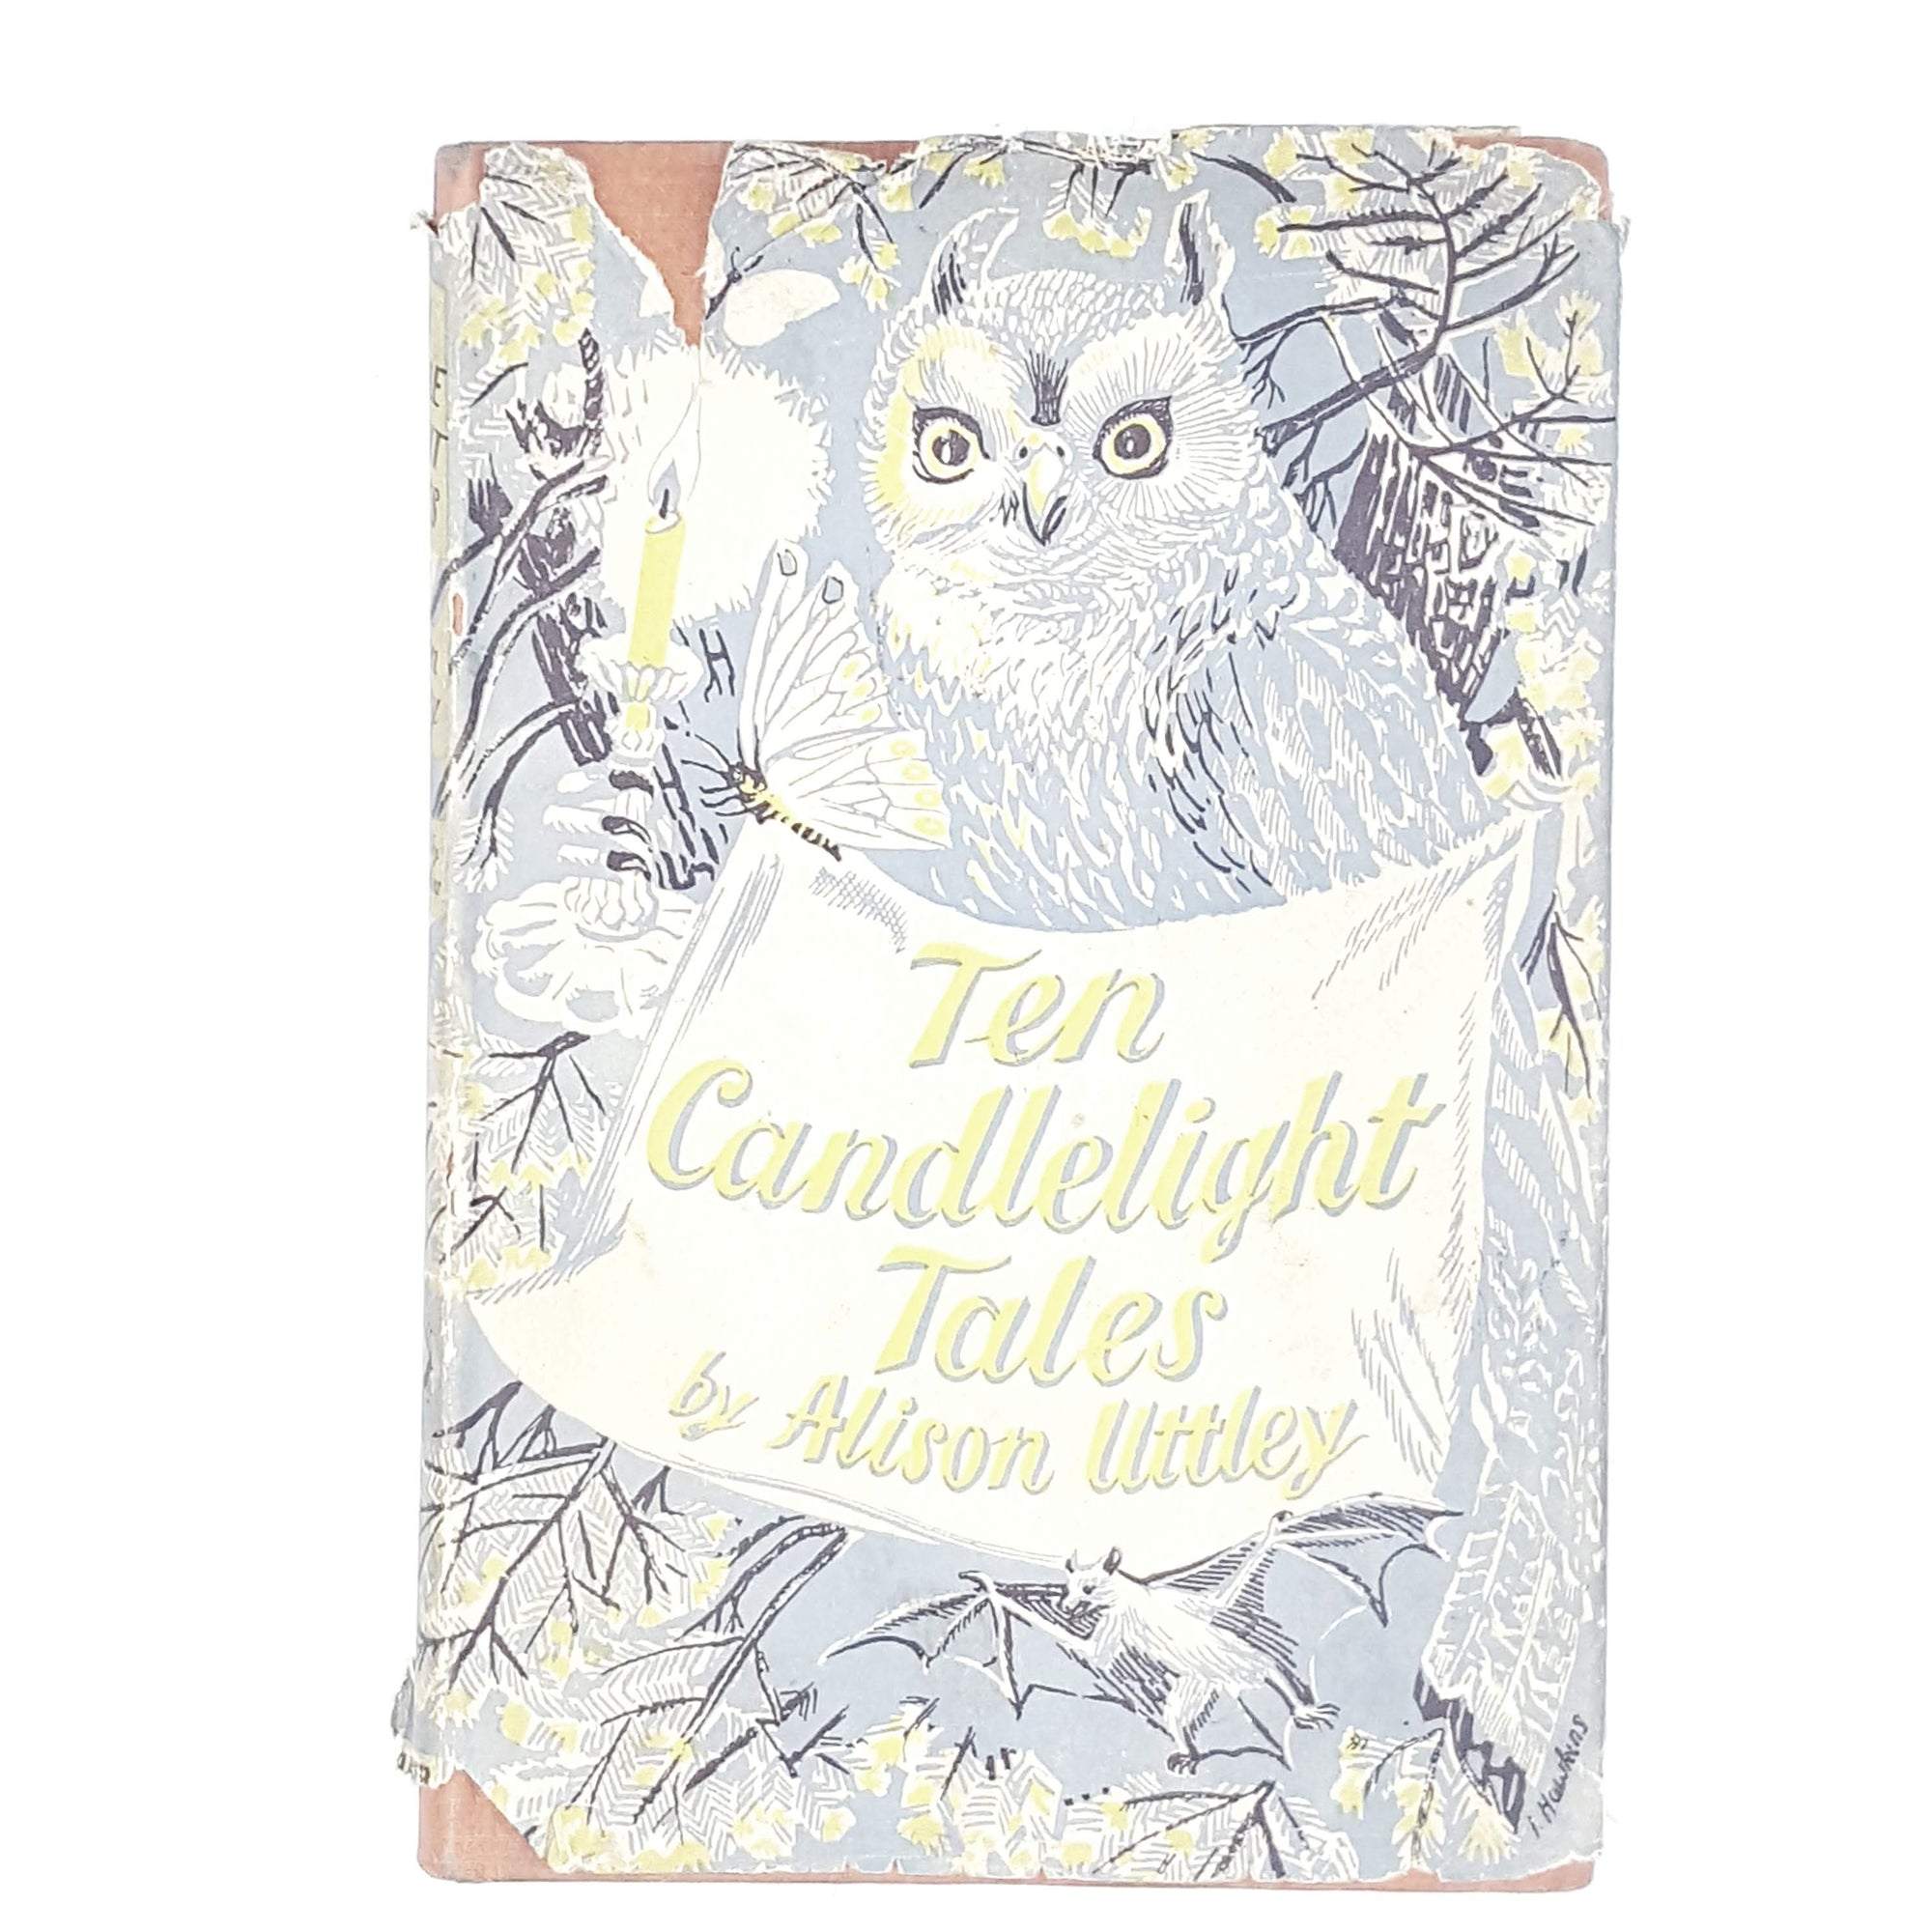 First Edition Ten Candelight Tales by Alison Littley 1942